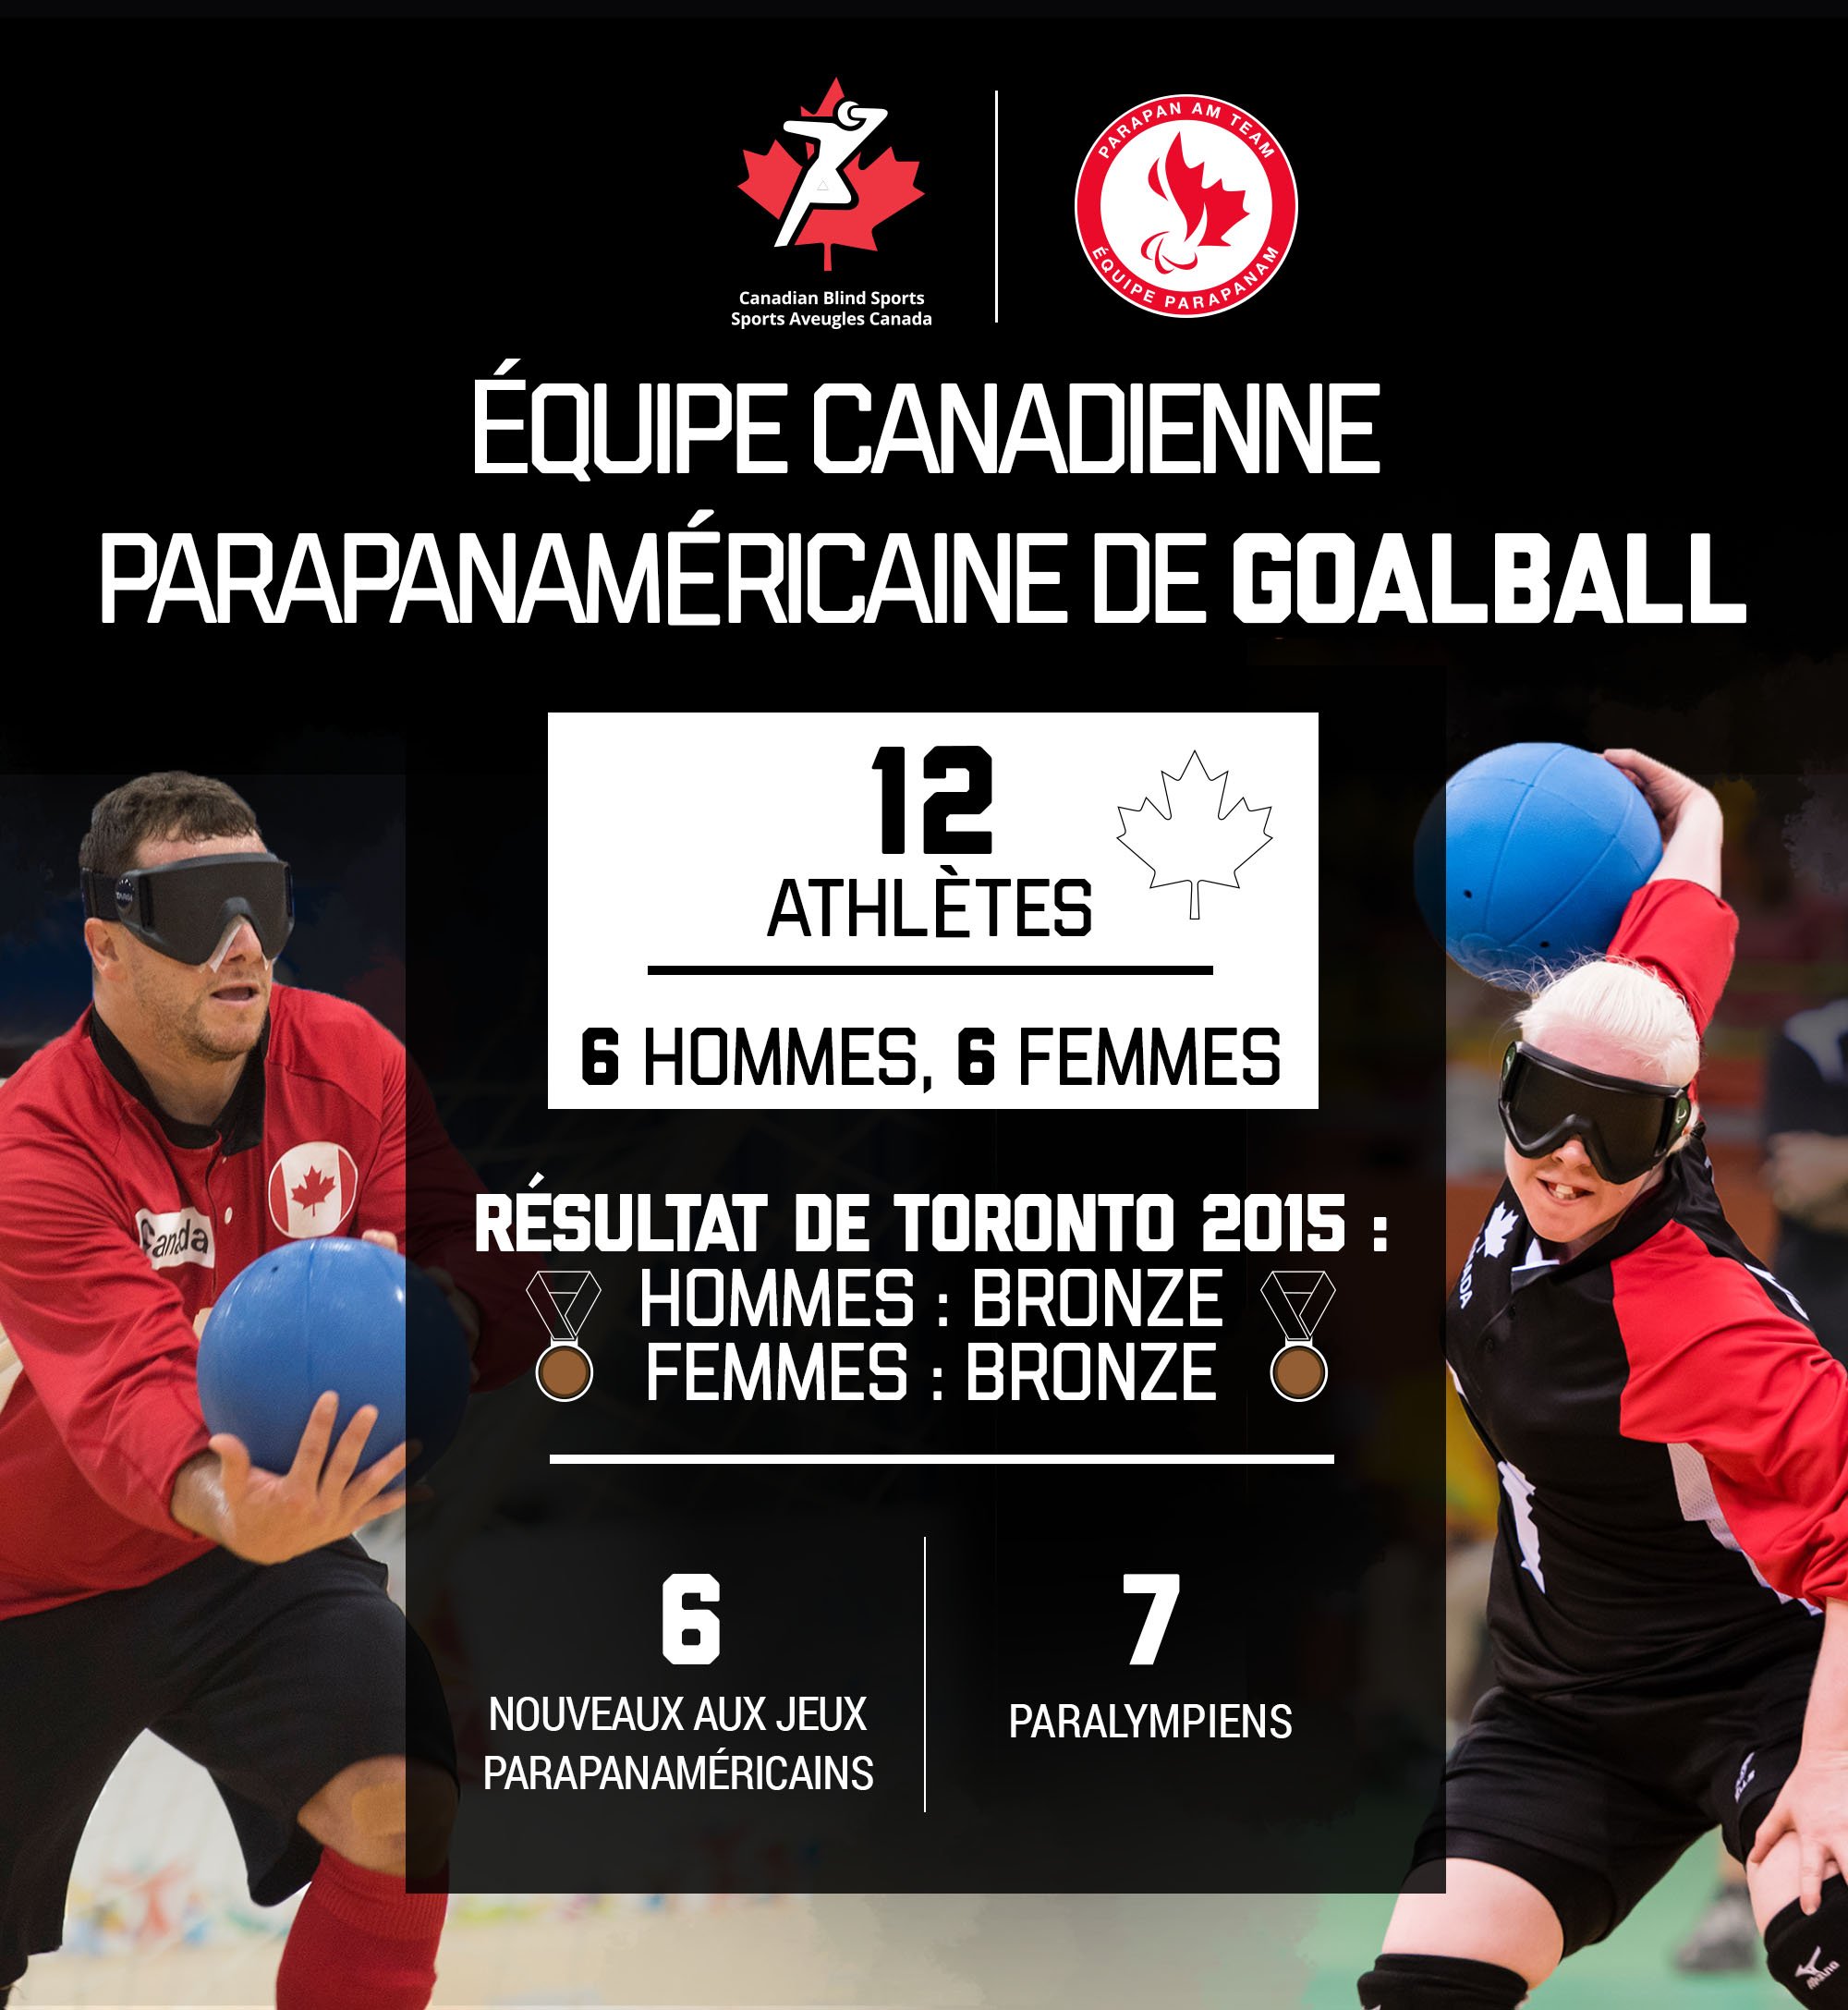 A graphic showing the make-up of the Canadian Parapan Am goalball team.